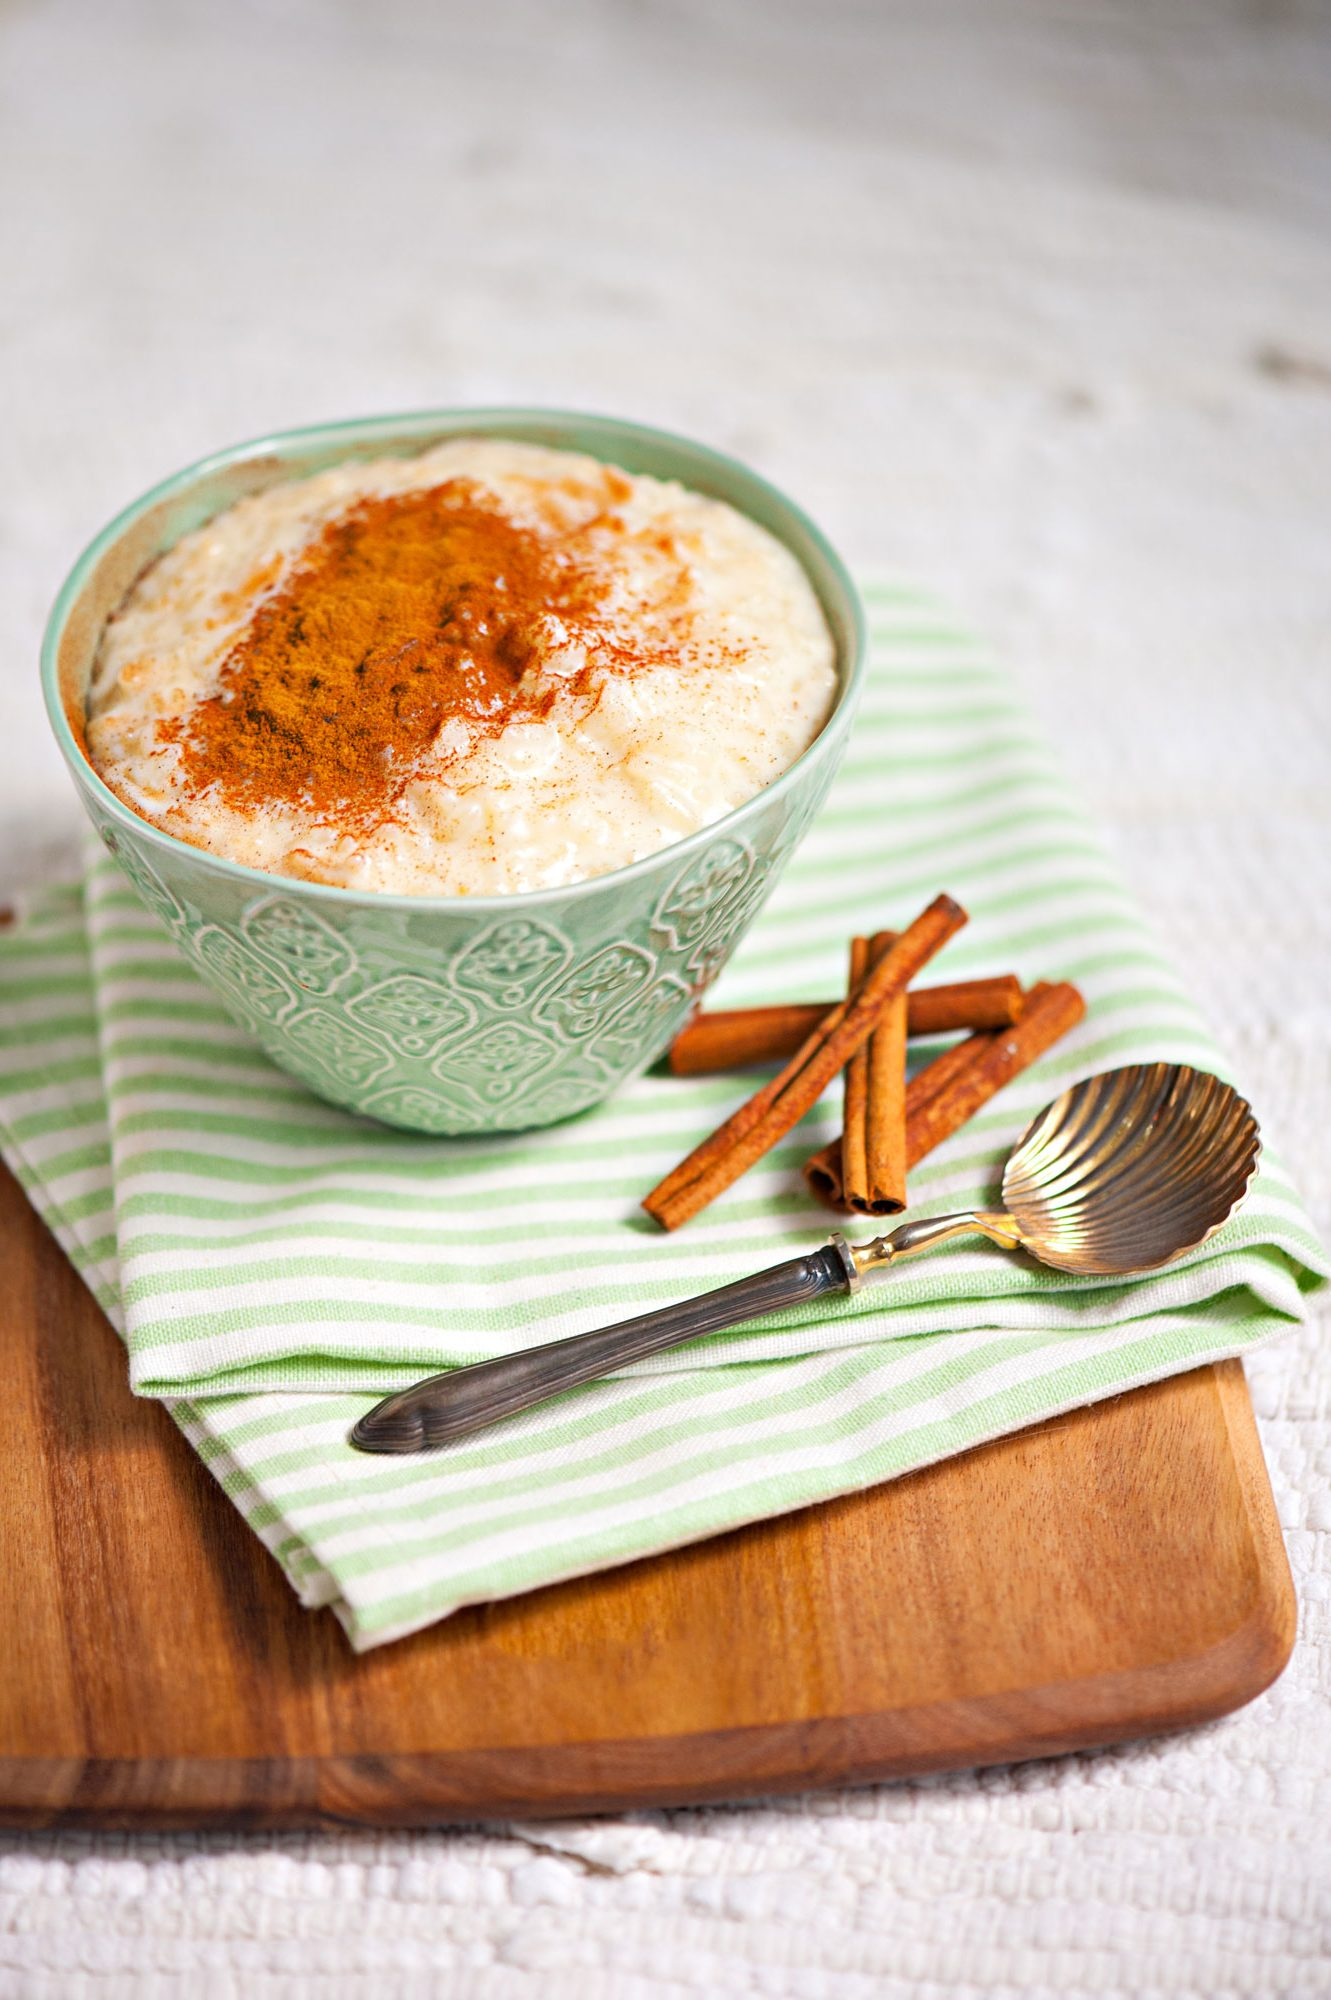 Rice pudding sprinkled with cinnamon in a intricate green bowl.